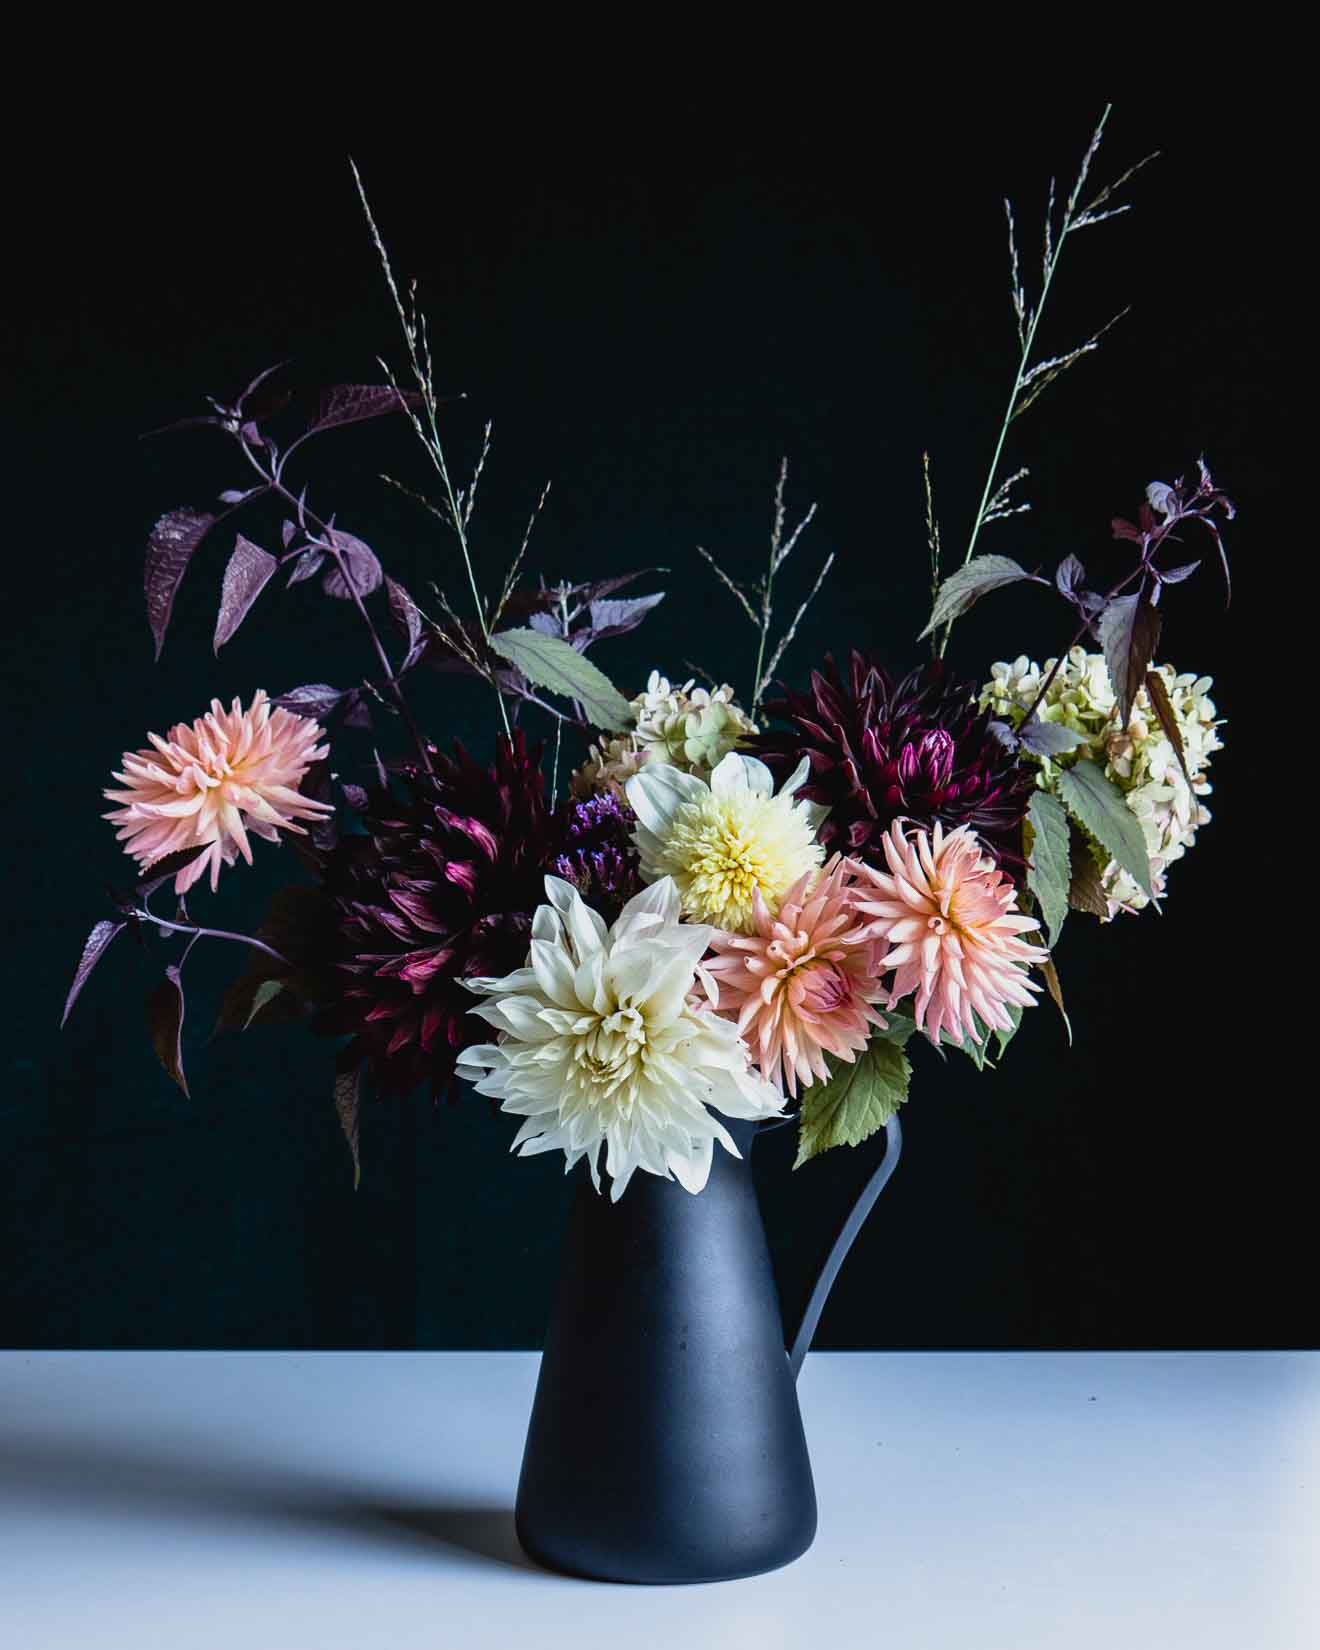 5 easy flower arrangement ideas with dahlias - Cloverhome.nl